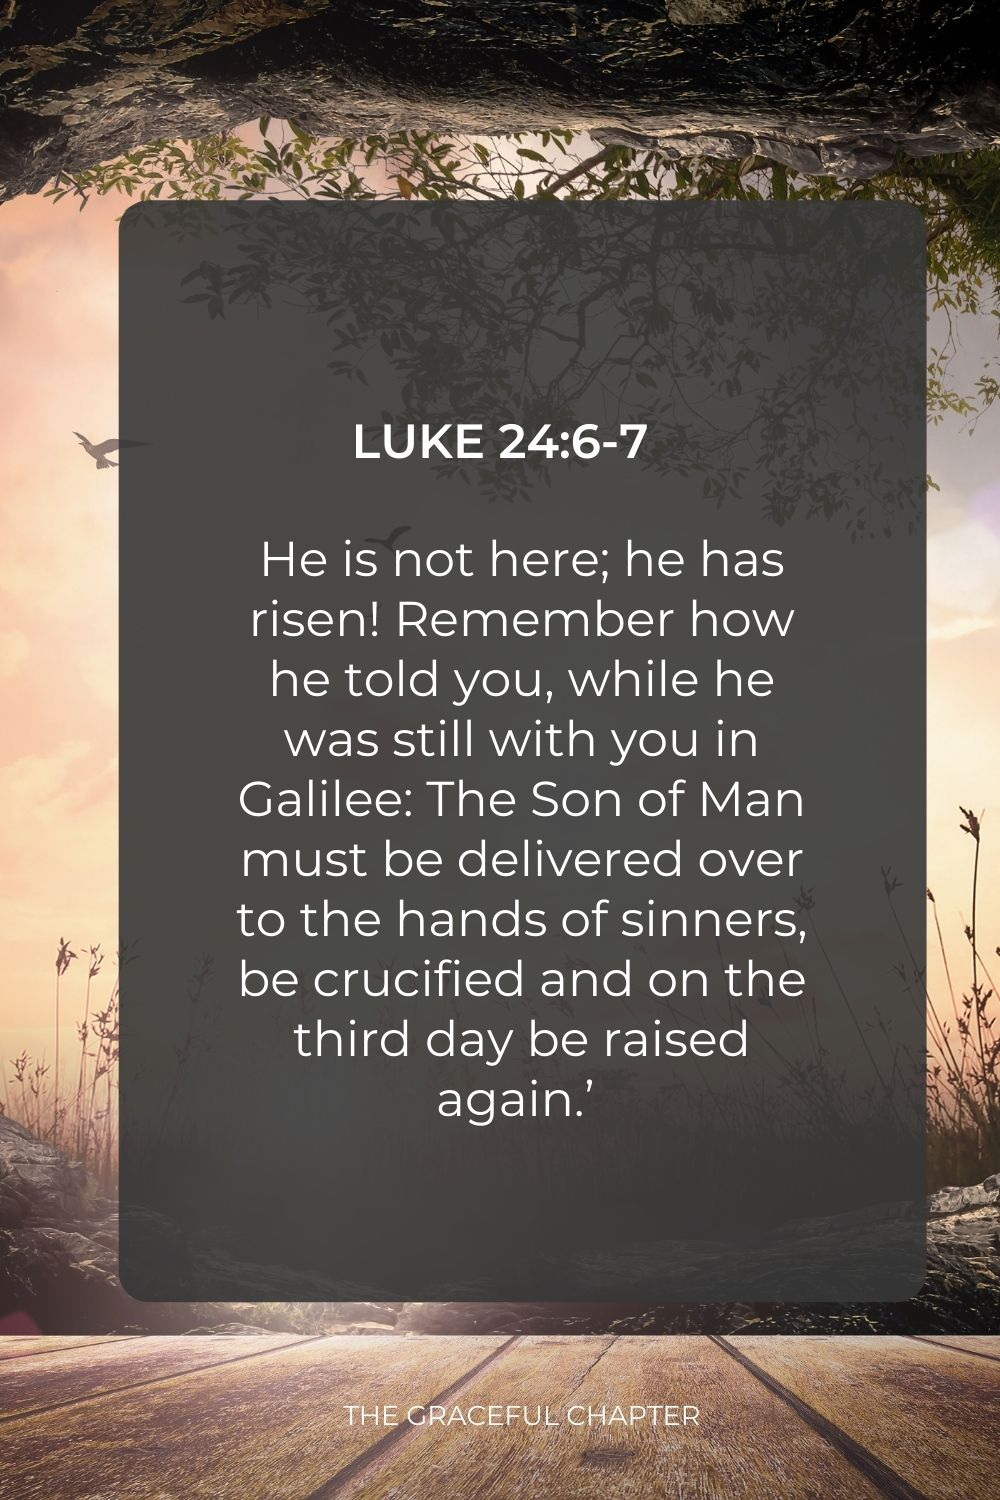 """He is not here; he has risen! Remember how he told you, while he was still with you in Galilee: The Son of Man must be delivered over to the hands of sinners, be crucified and on the third day be raised again.'  """"Luke 24:6-7"""